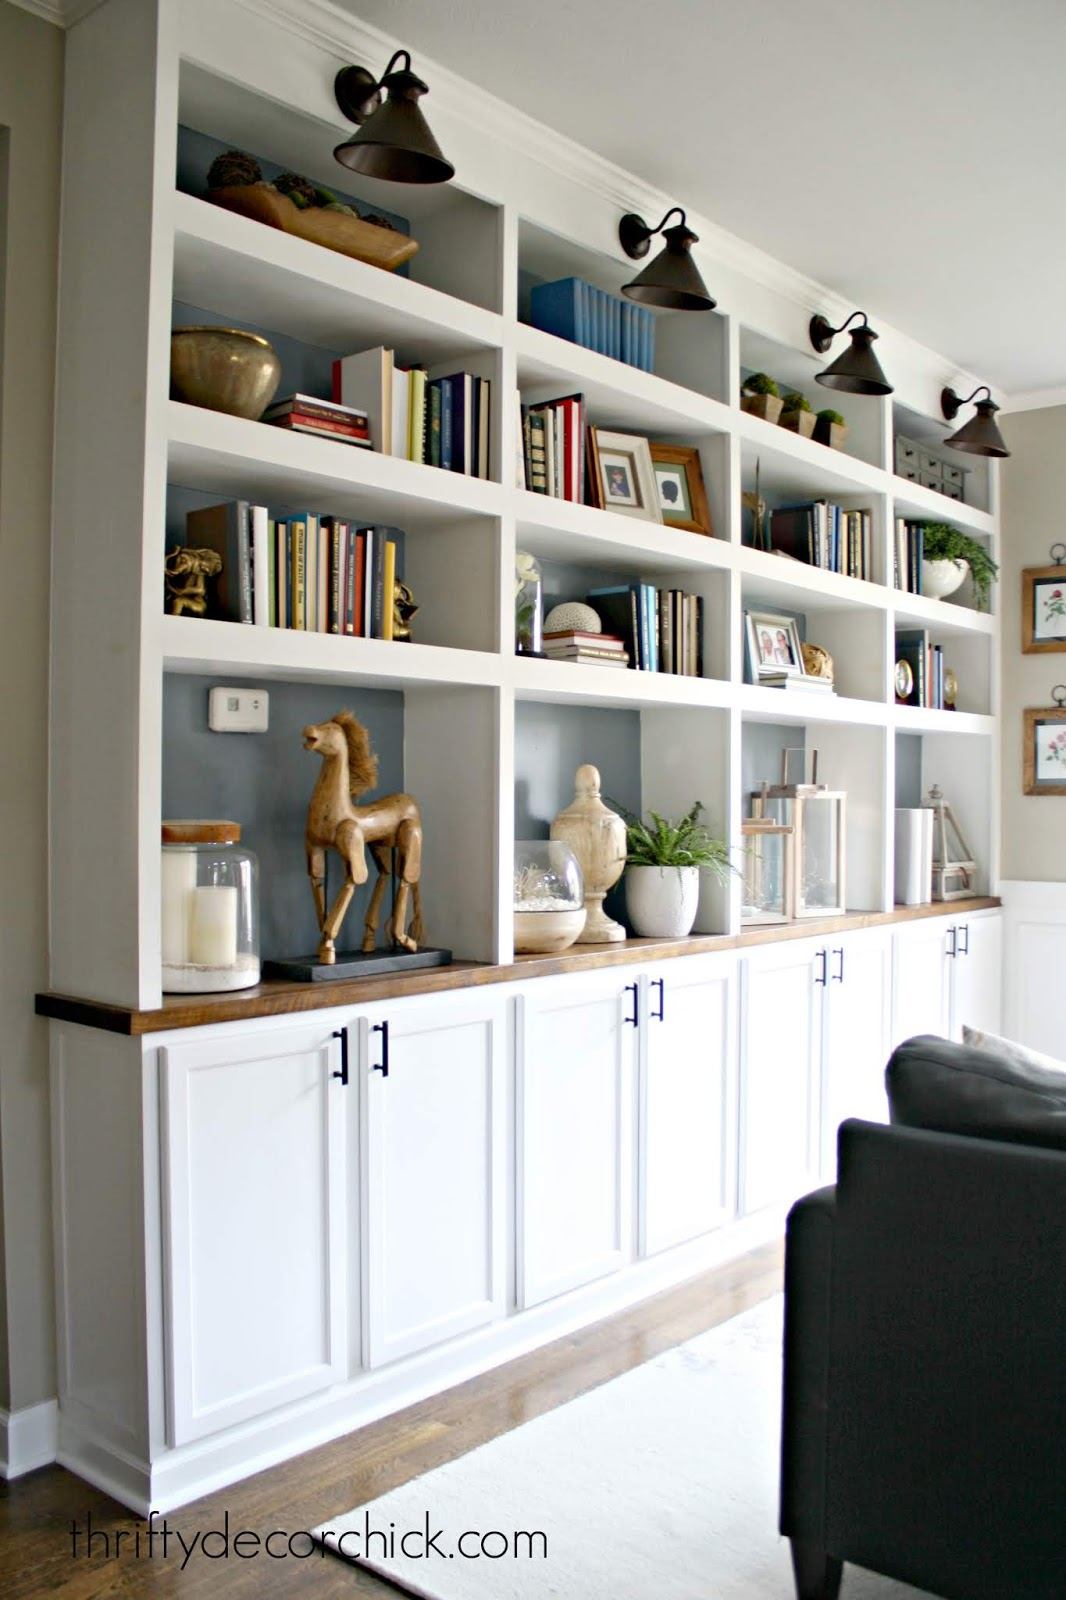 DIY bookcases with storage using kitchen cabinets